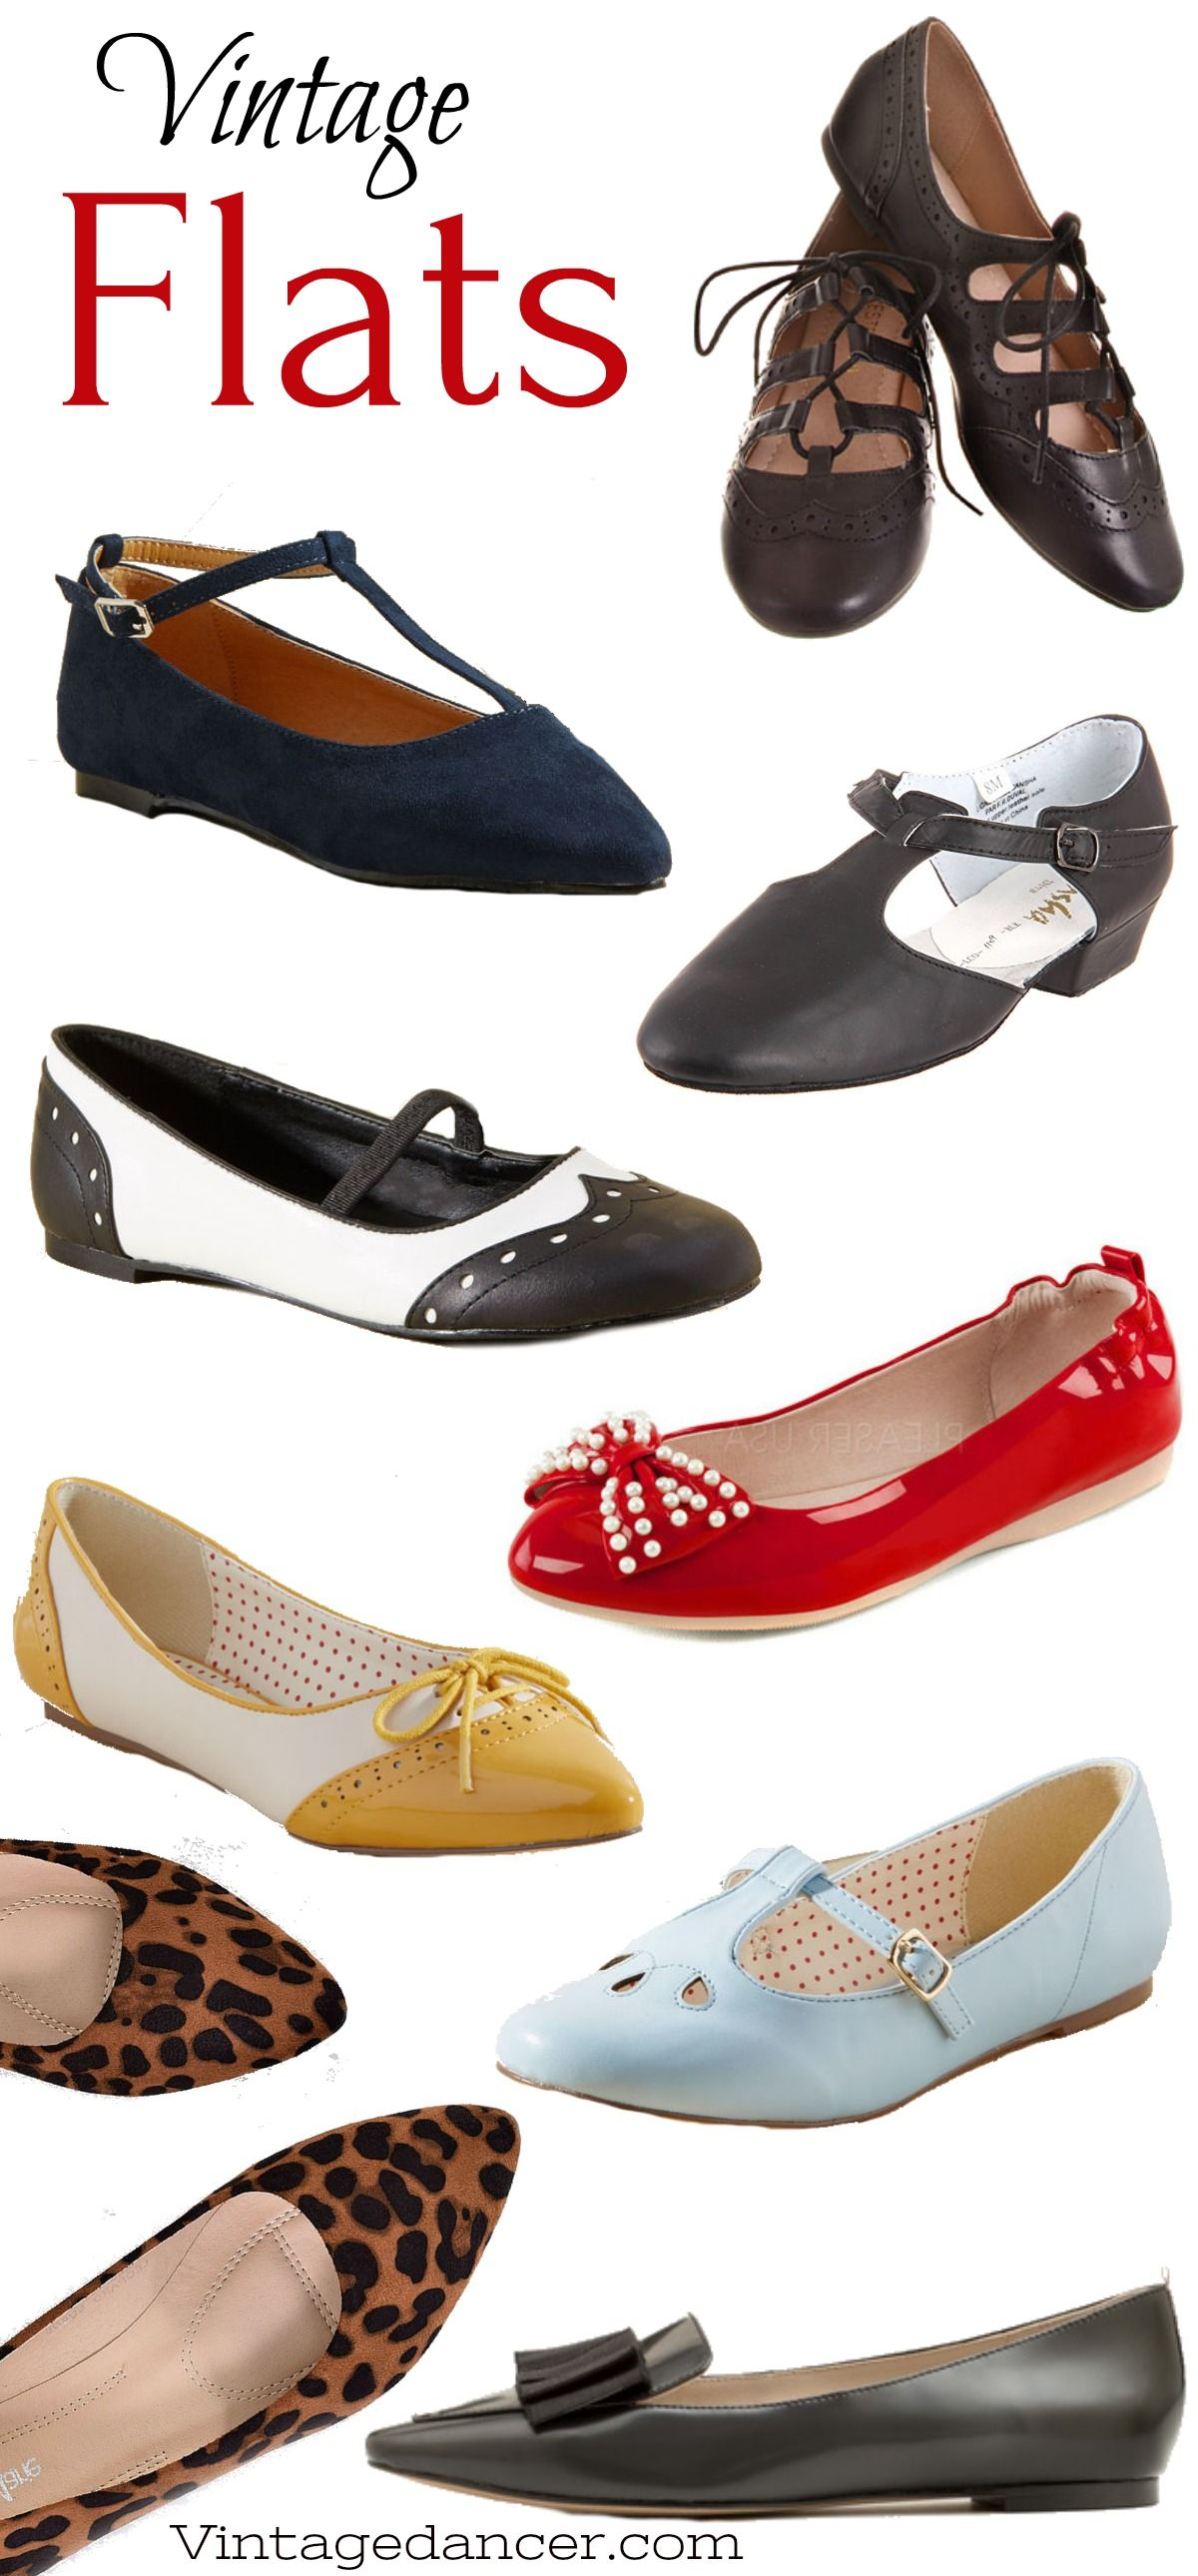 e26d21446 Vintage Flats Shoes for every decade: 1910s, 20s, 30s, 40s, 50s, 60s